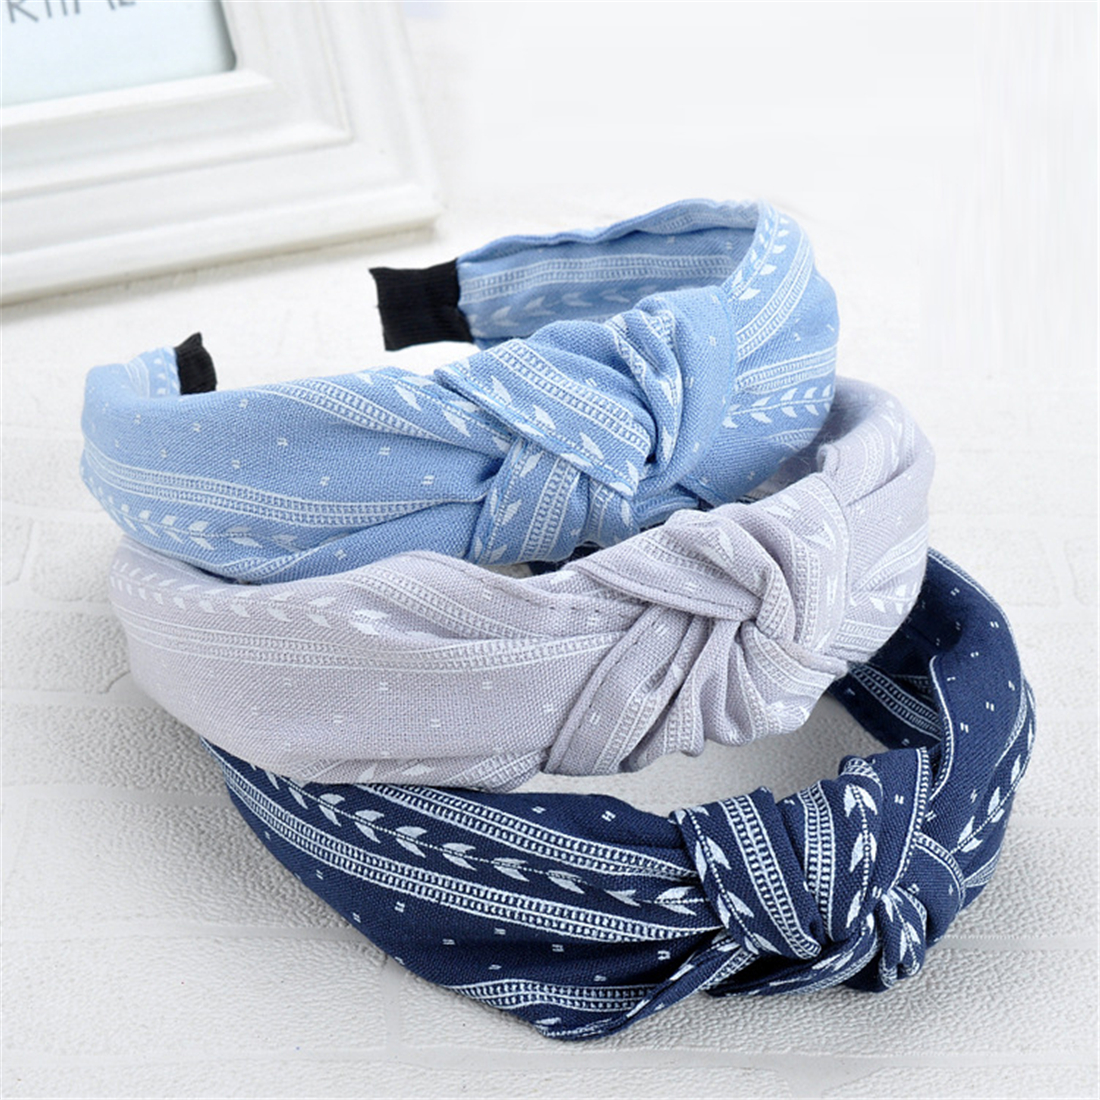 2020 New Women Bowknot Wide Hairband Cross Knotted Head Band Girls Fashion Fabric Headband Solid Head Hoop Lady Hair Accessories